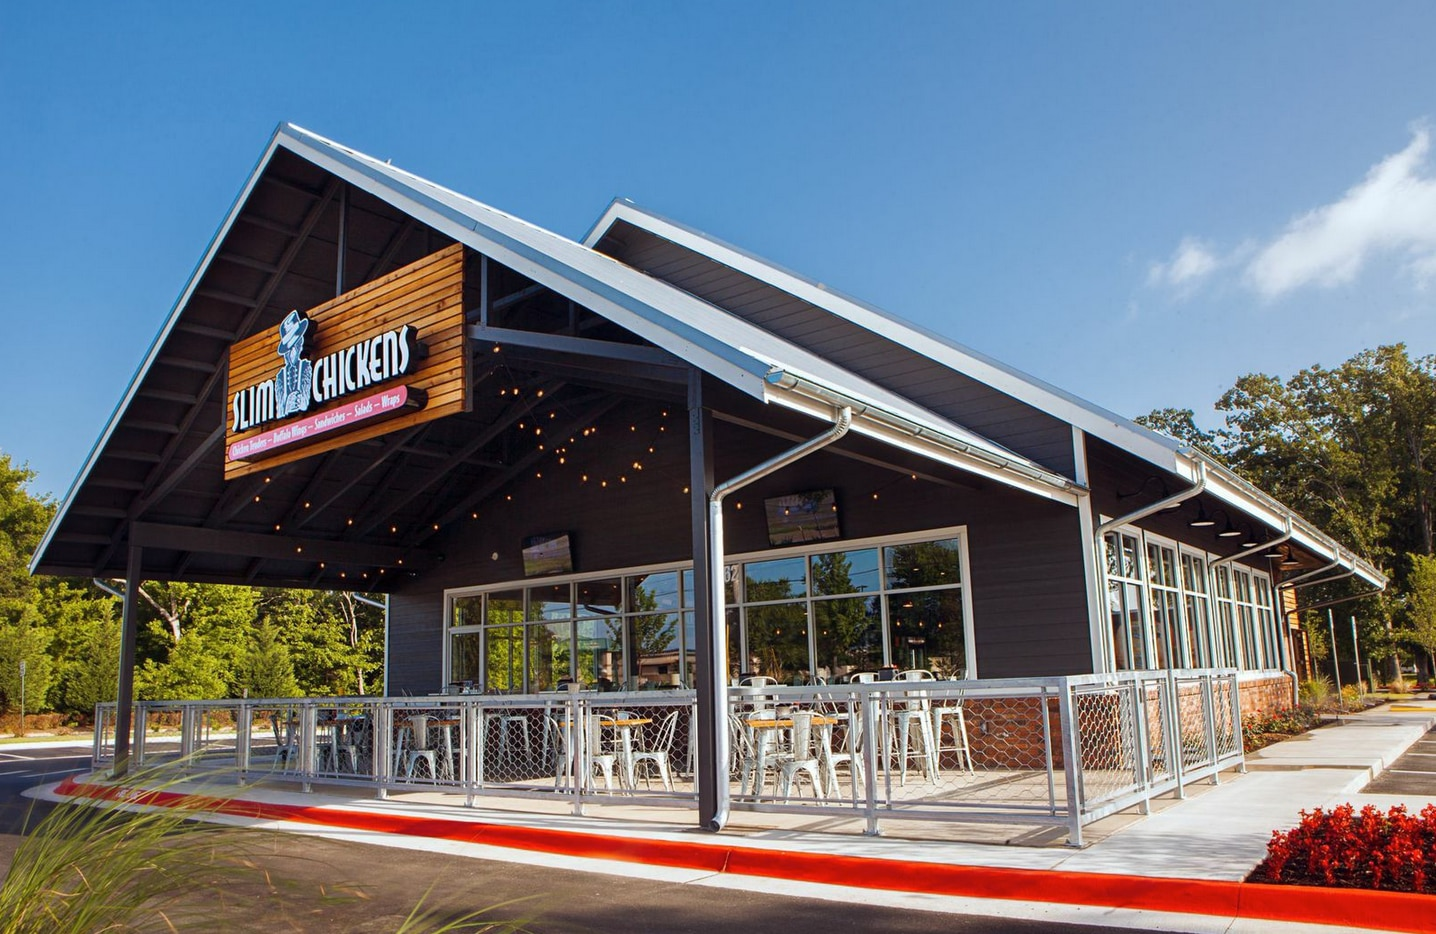 Here's a look at an existing Slim Chickens. Fort Worth gets its first this summer.